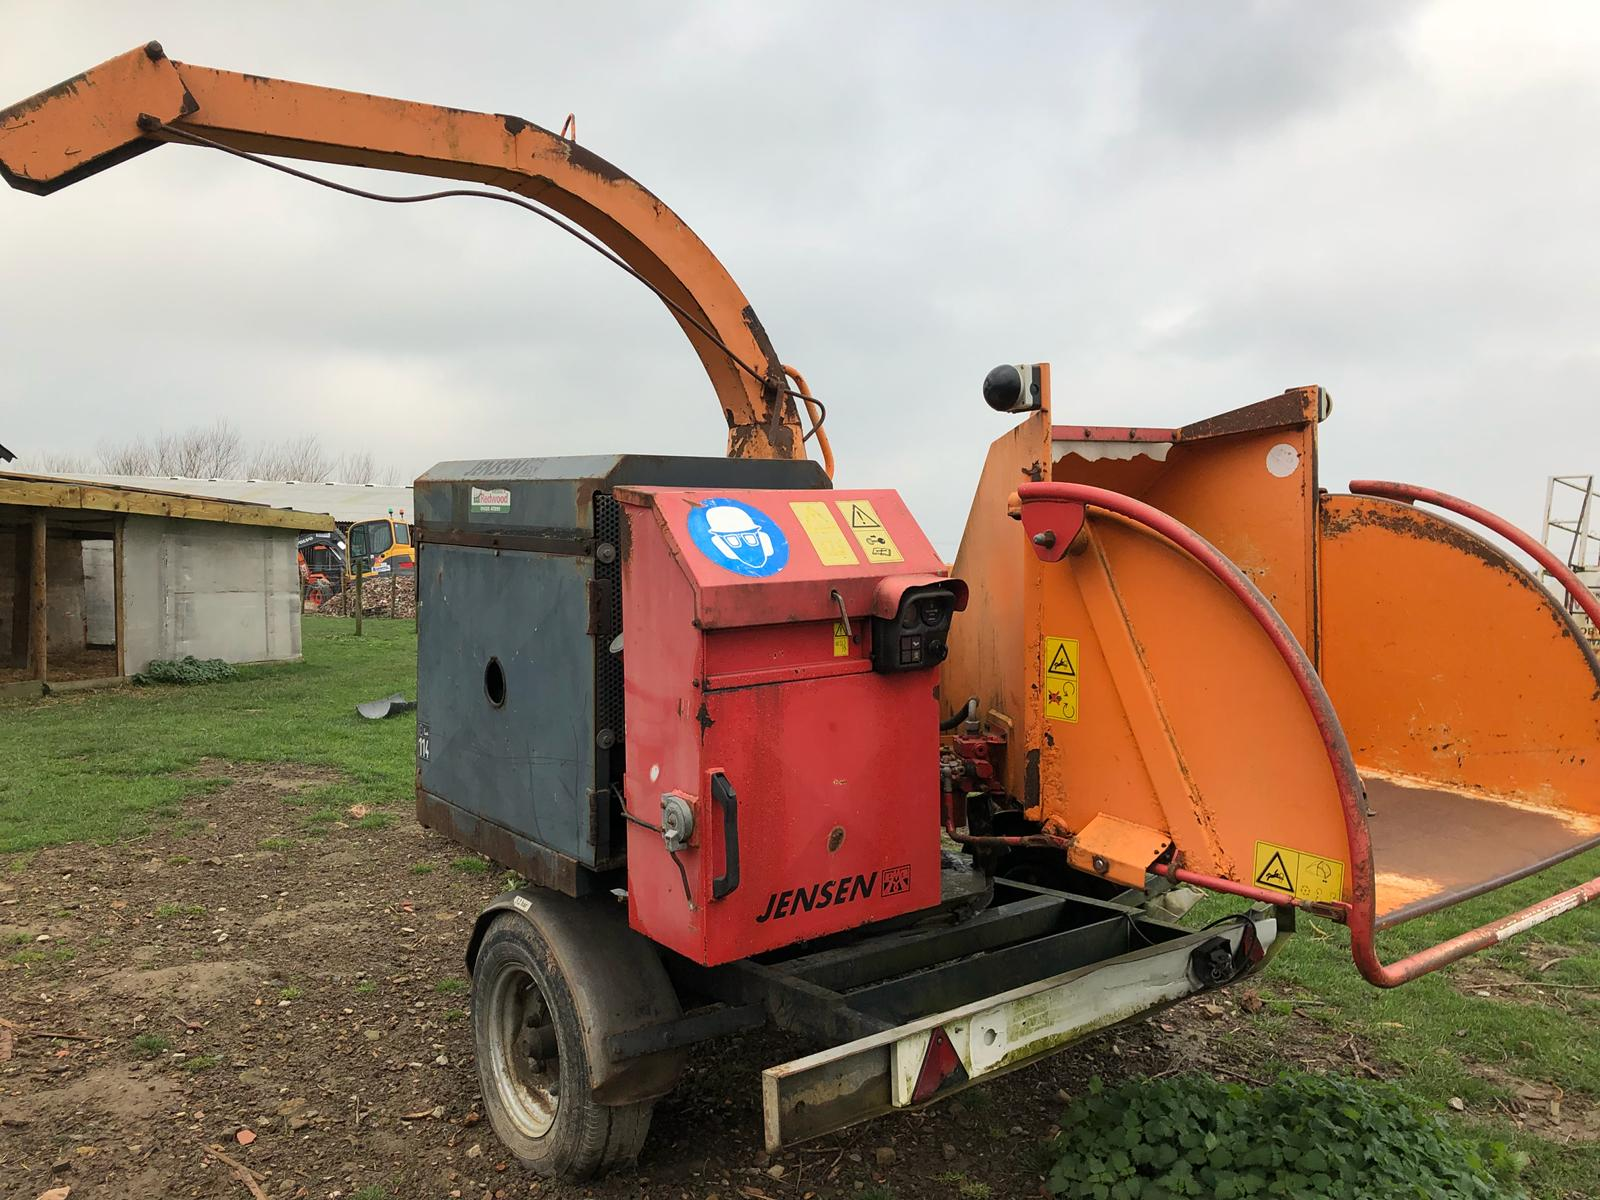 DS - QUALITY 2004 JENSEN DIESEL TURNTABLE CHIPPER, QUALITY TRAILER - Bild 3 aus 8